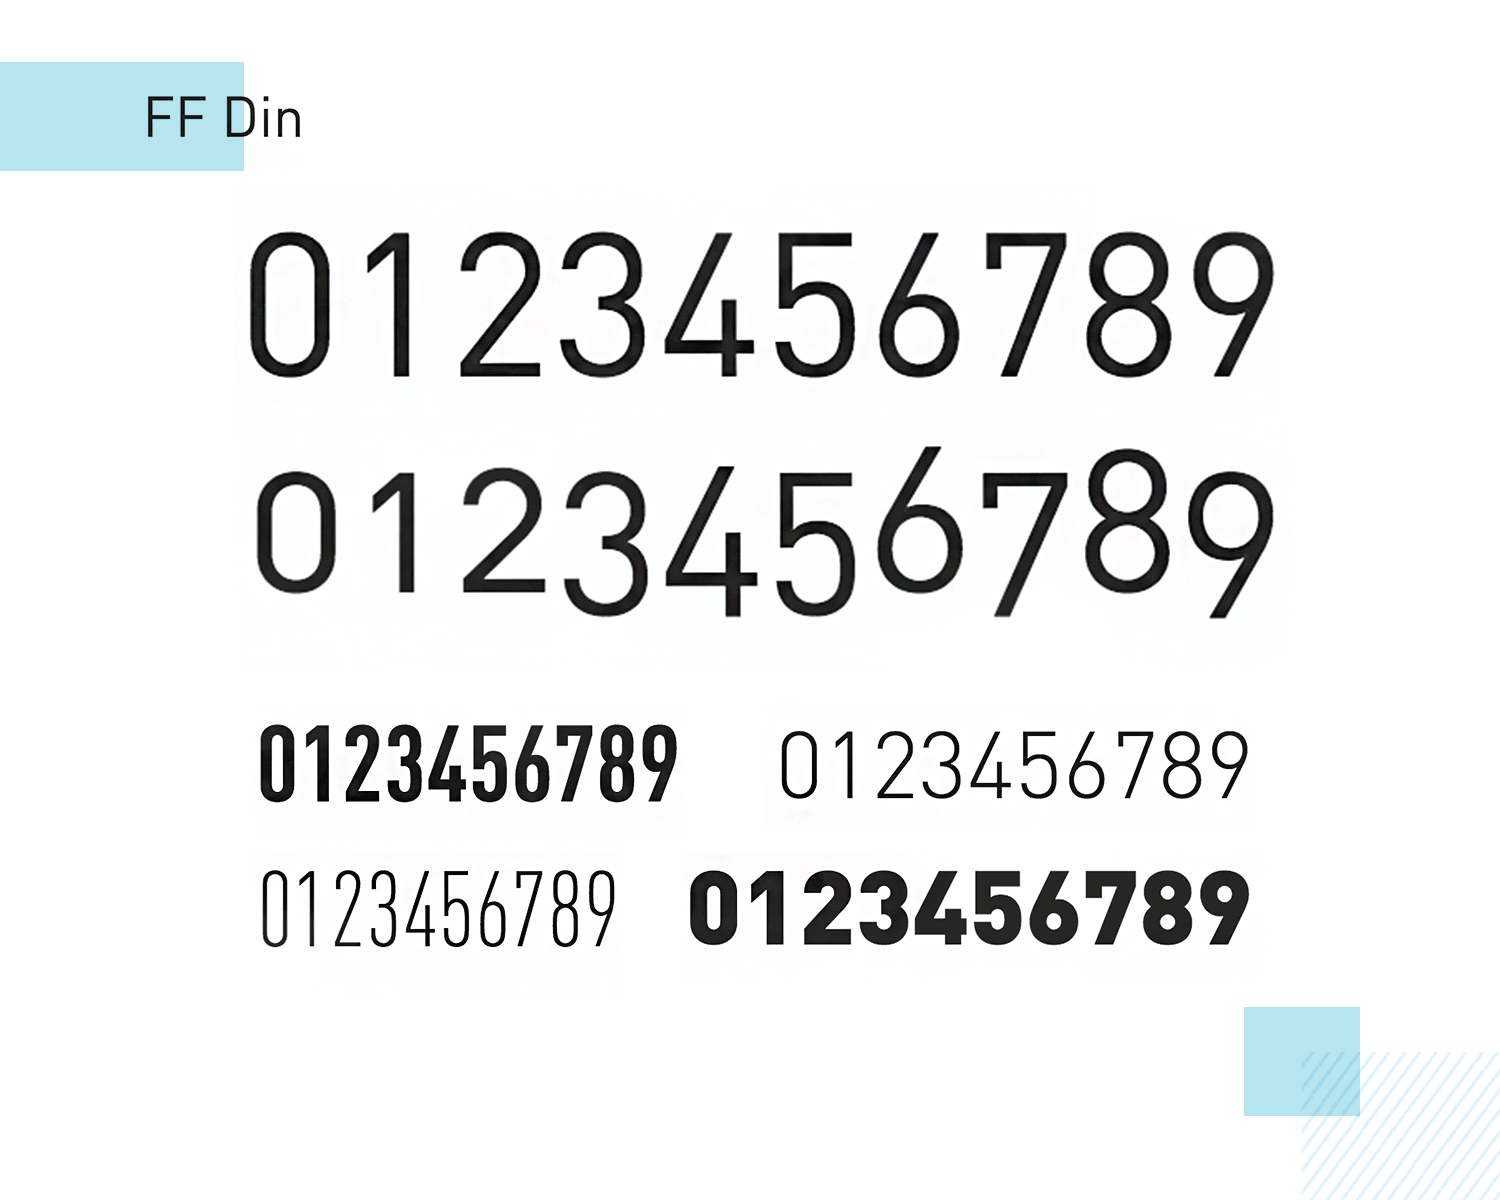 ff din as paid number font